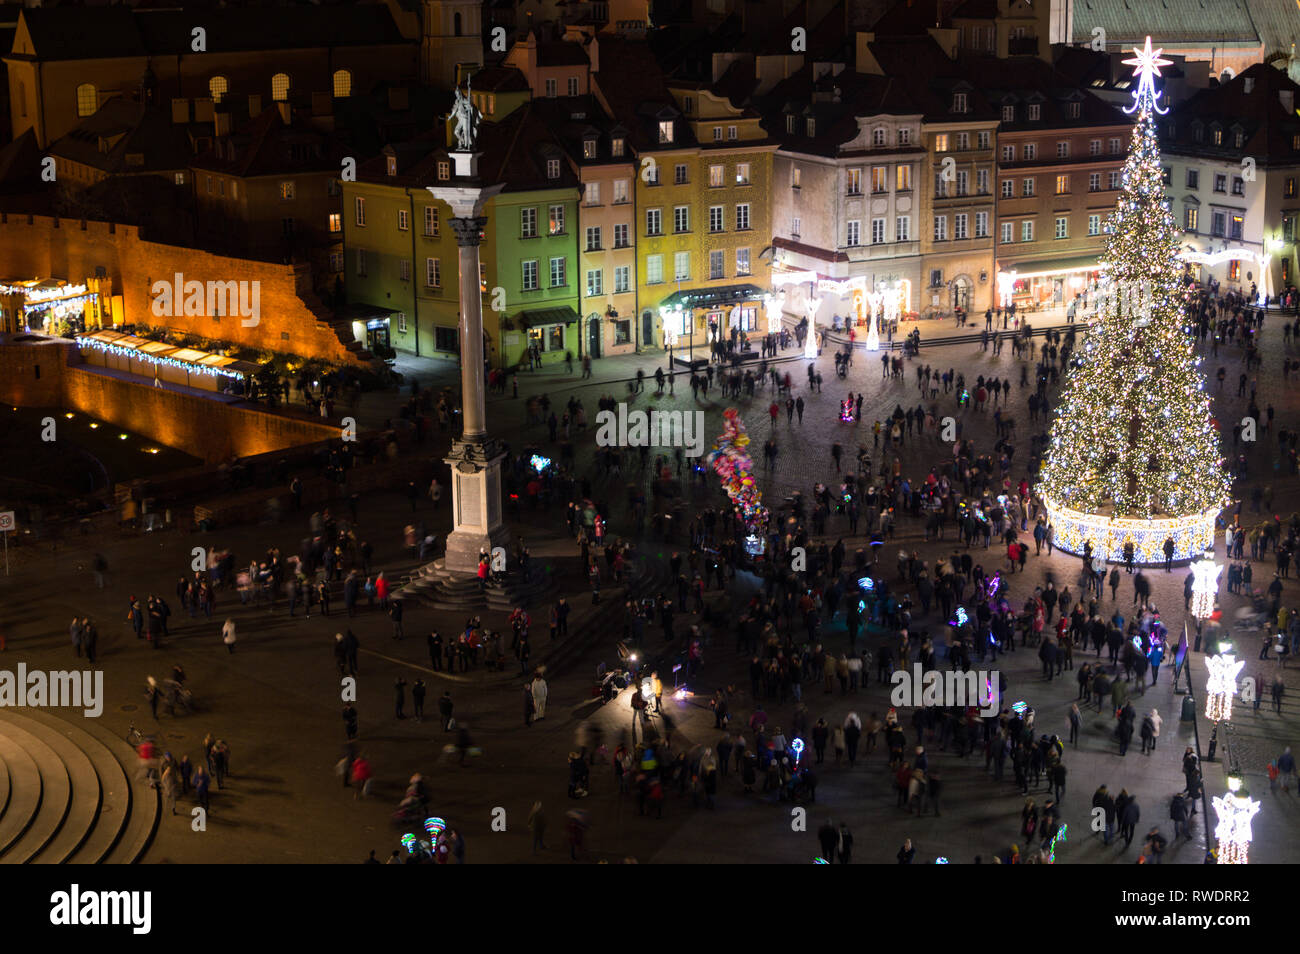 Christmas Crowd in Warsaw, Poland as Seen from Taras Widokowy Tower at Night - Stock Image